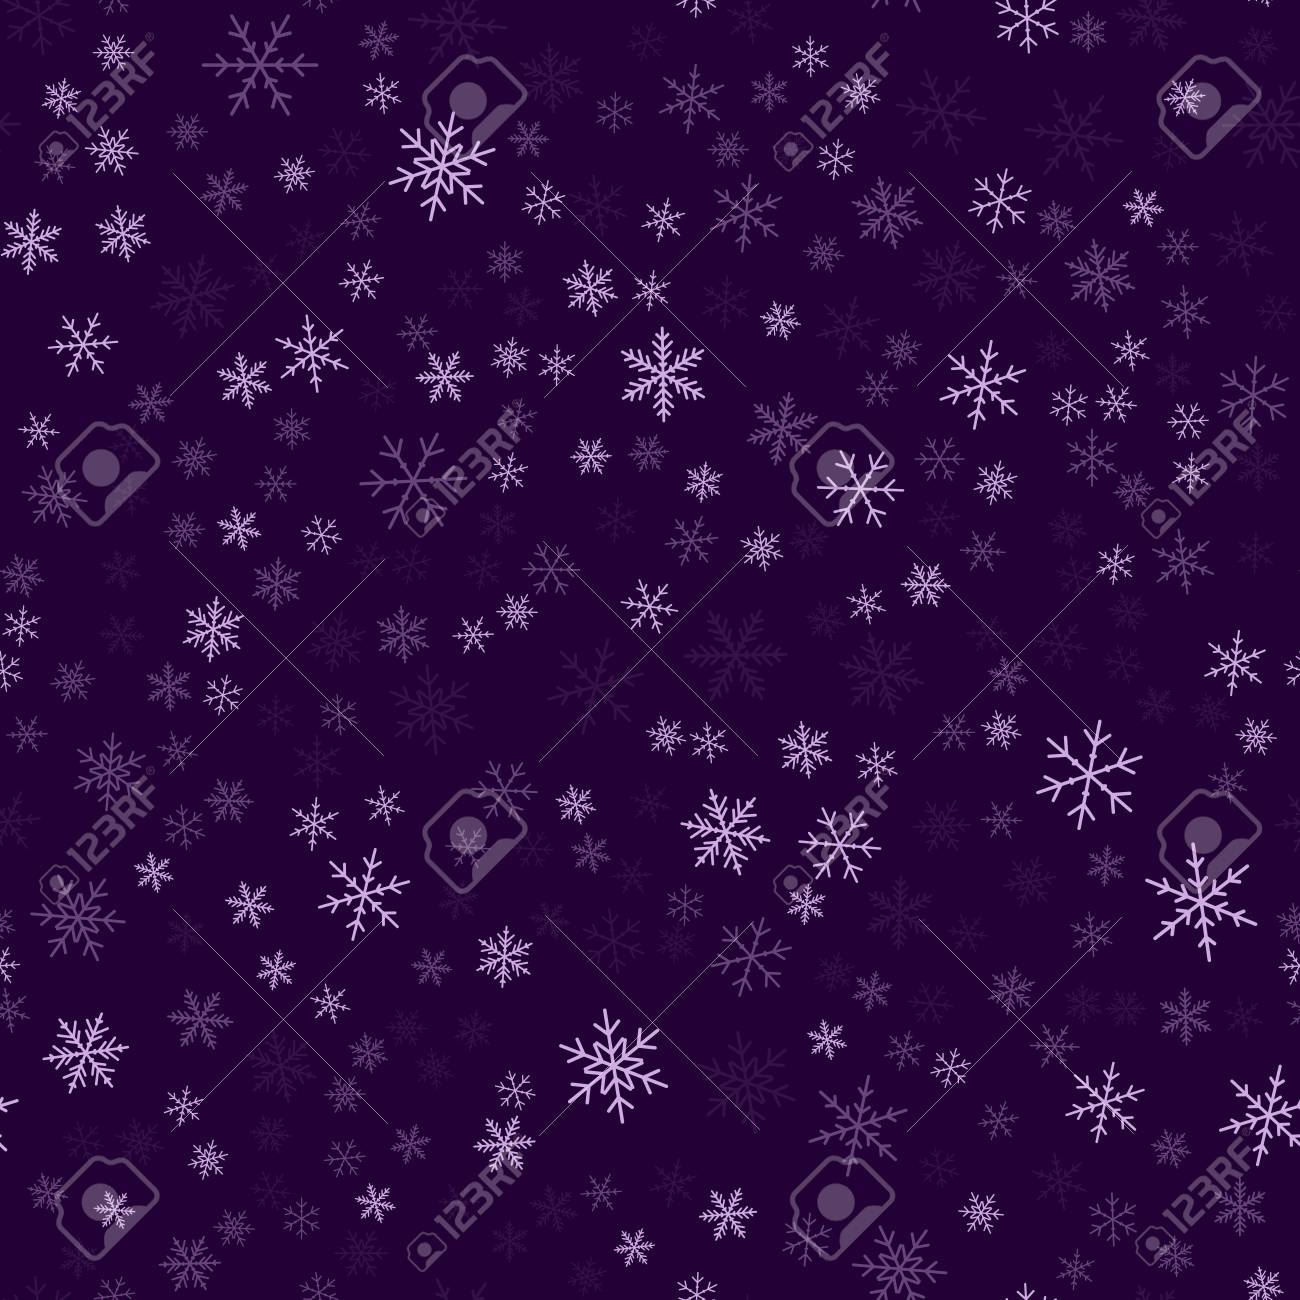 Violet Snowflakes Seamless Pattern On Purple Christmas Background Royalty Free Cliparts Vectors And Stock Illustration Image 105390809